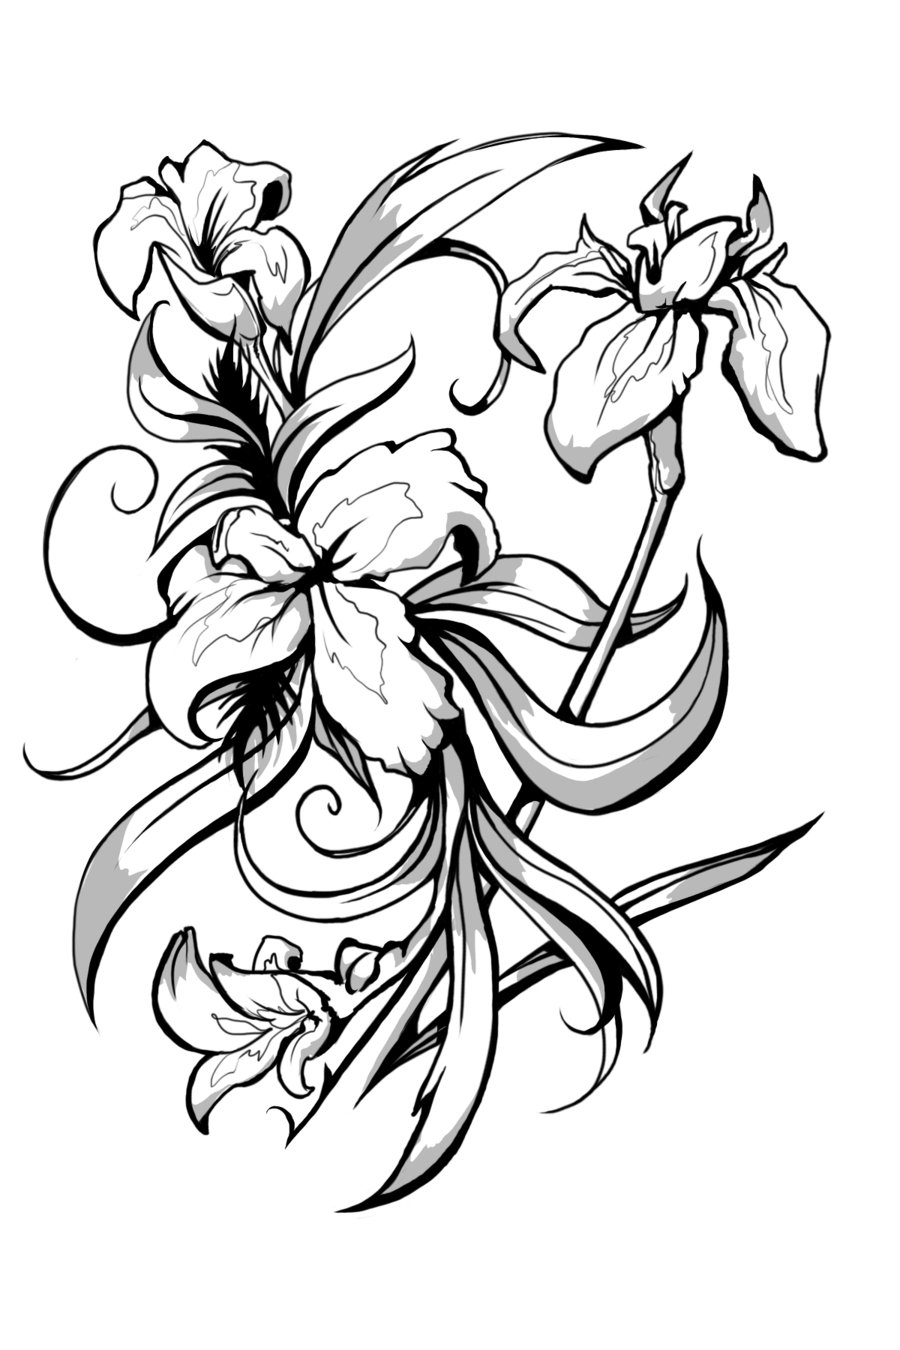 Iris clipart black and white #15